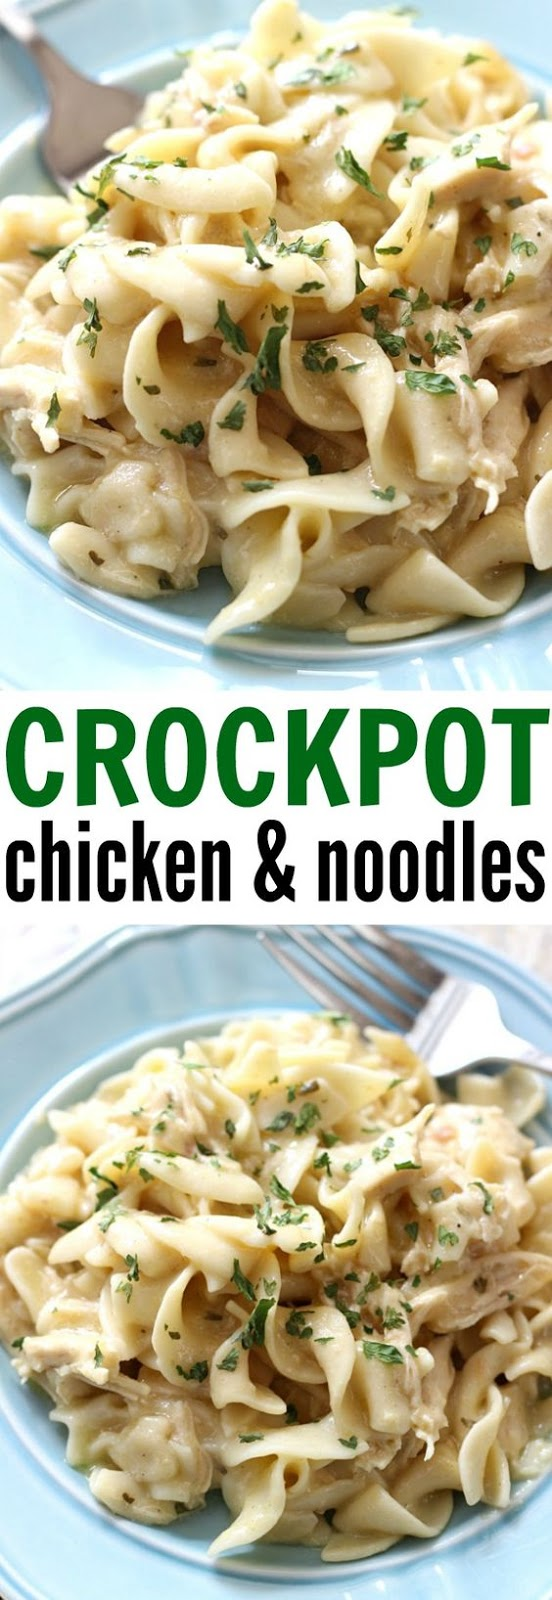 EASY CREAMY CROCKPOT CHICKEN AND NOODLES